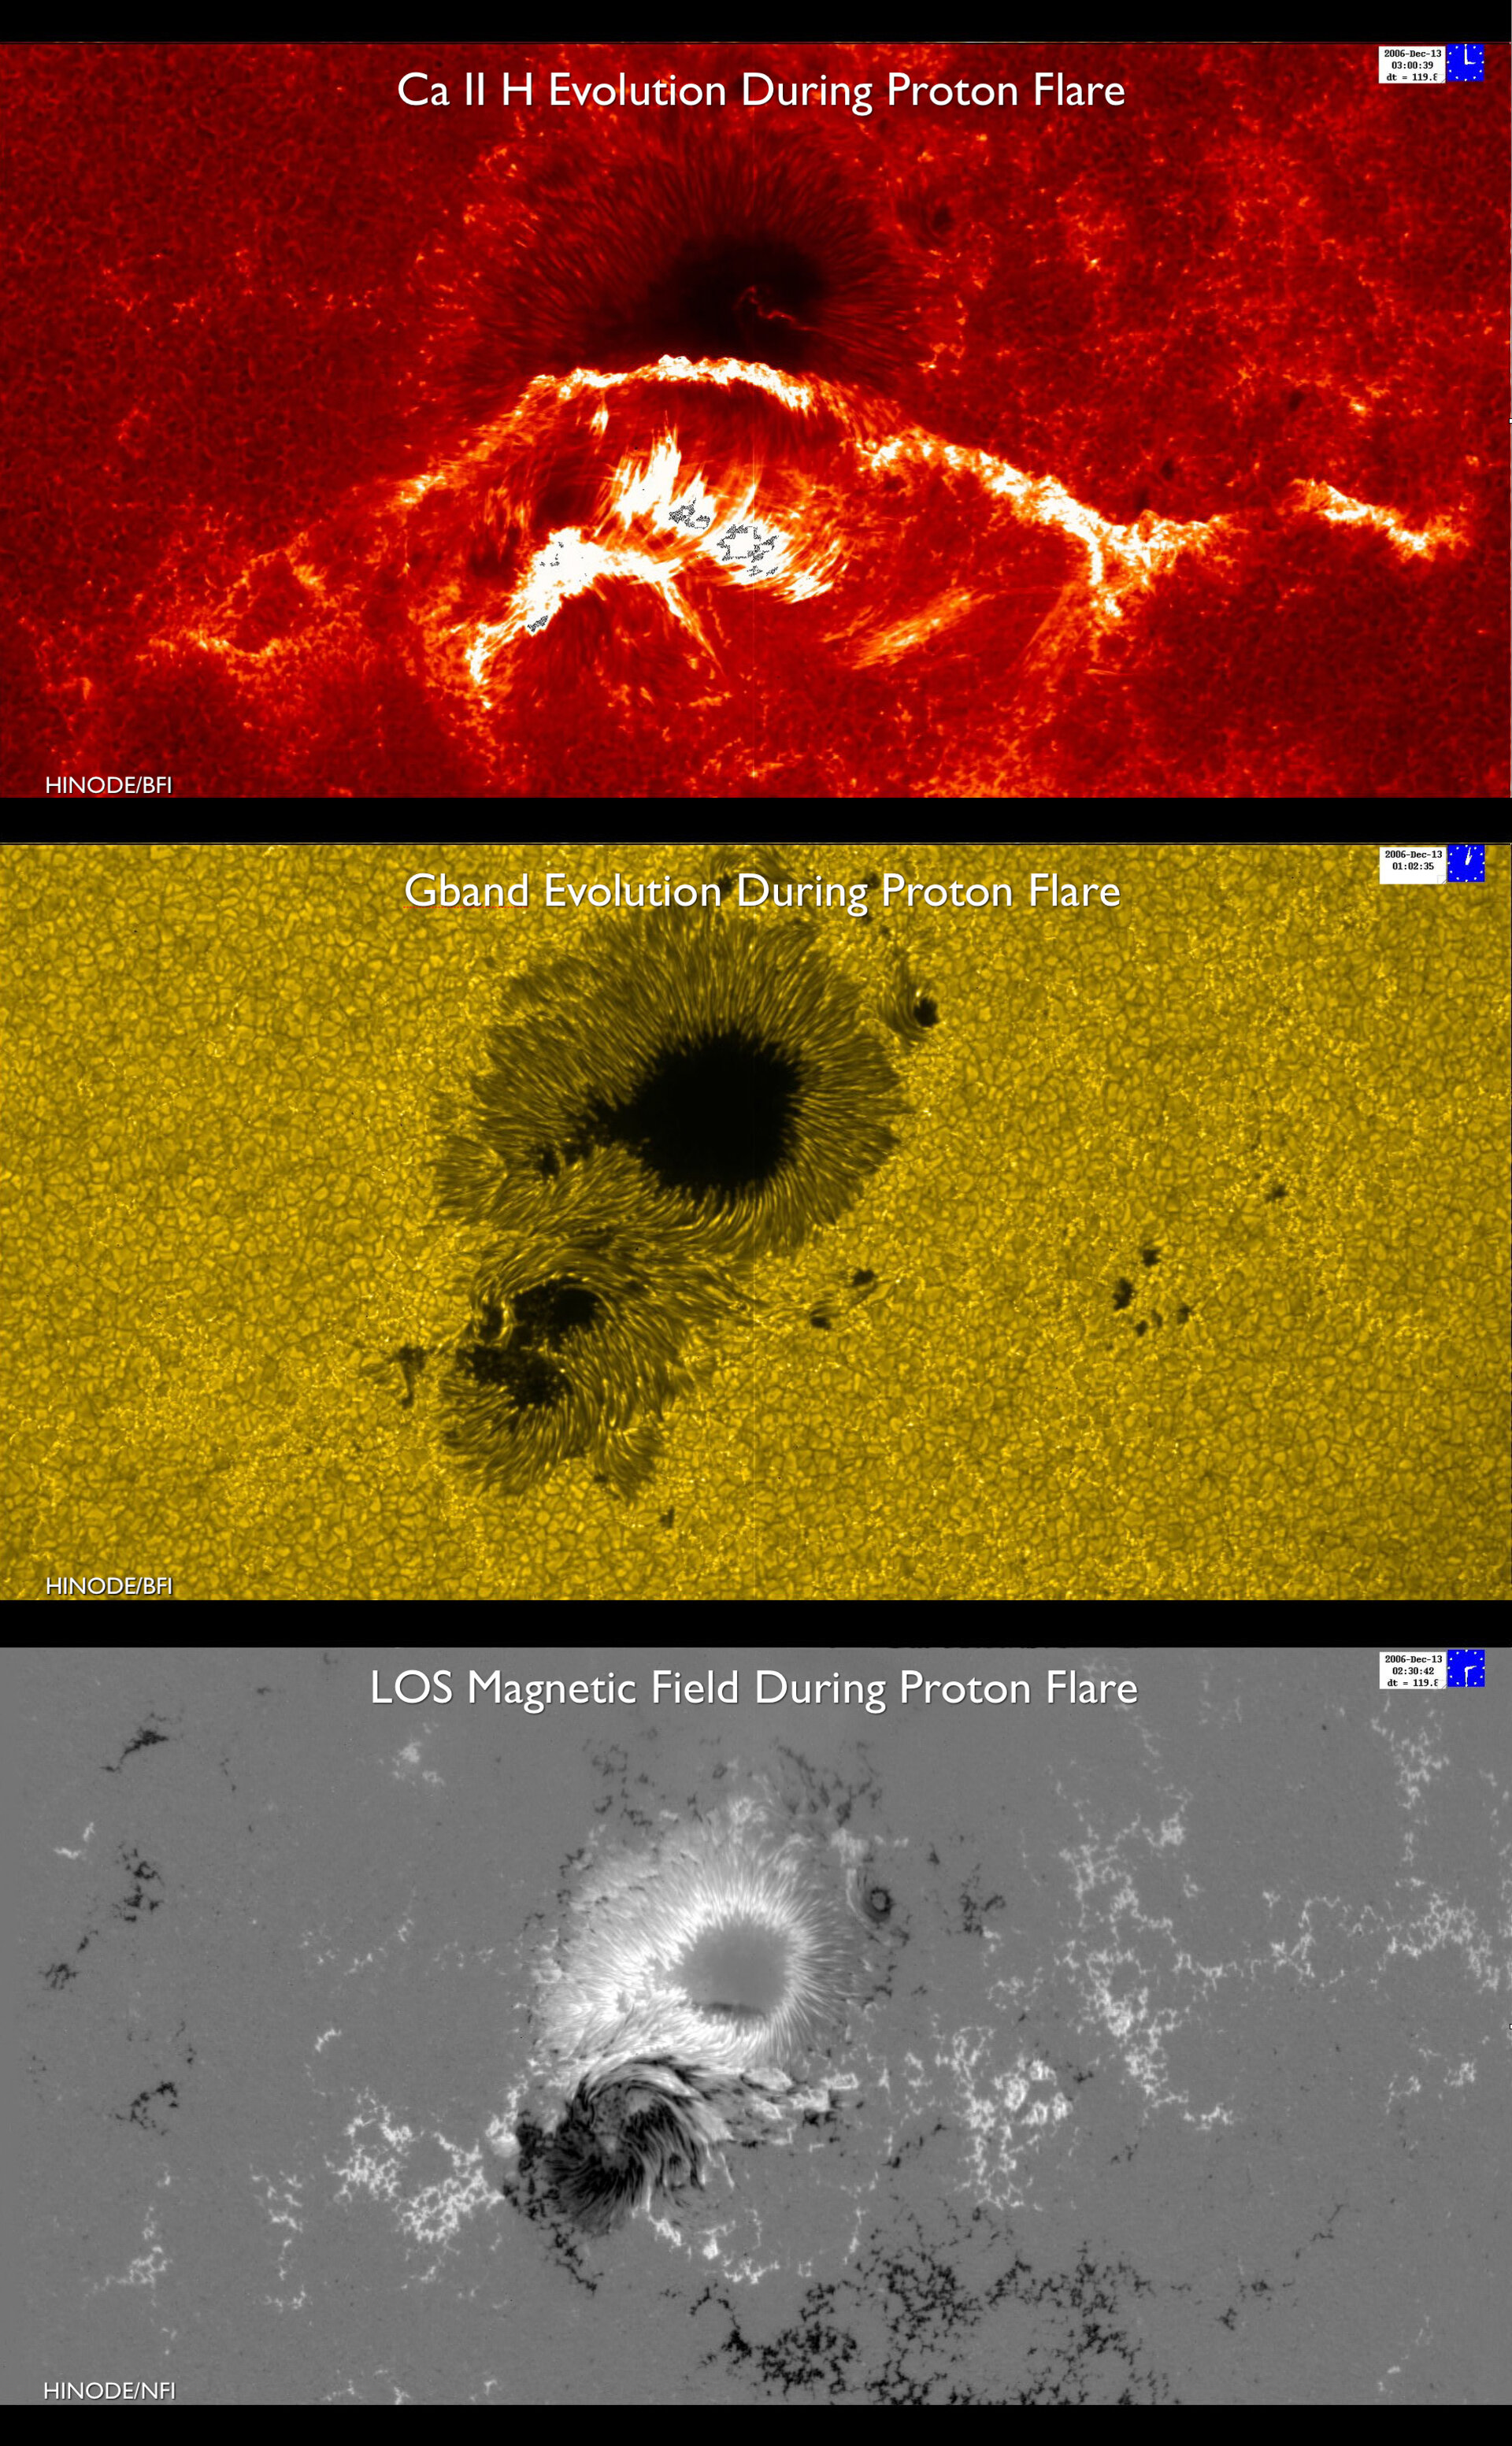 Colliding sunspots cause solar flare